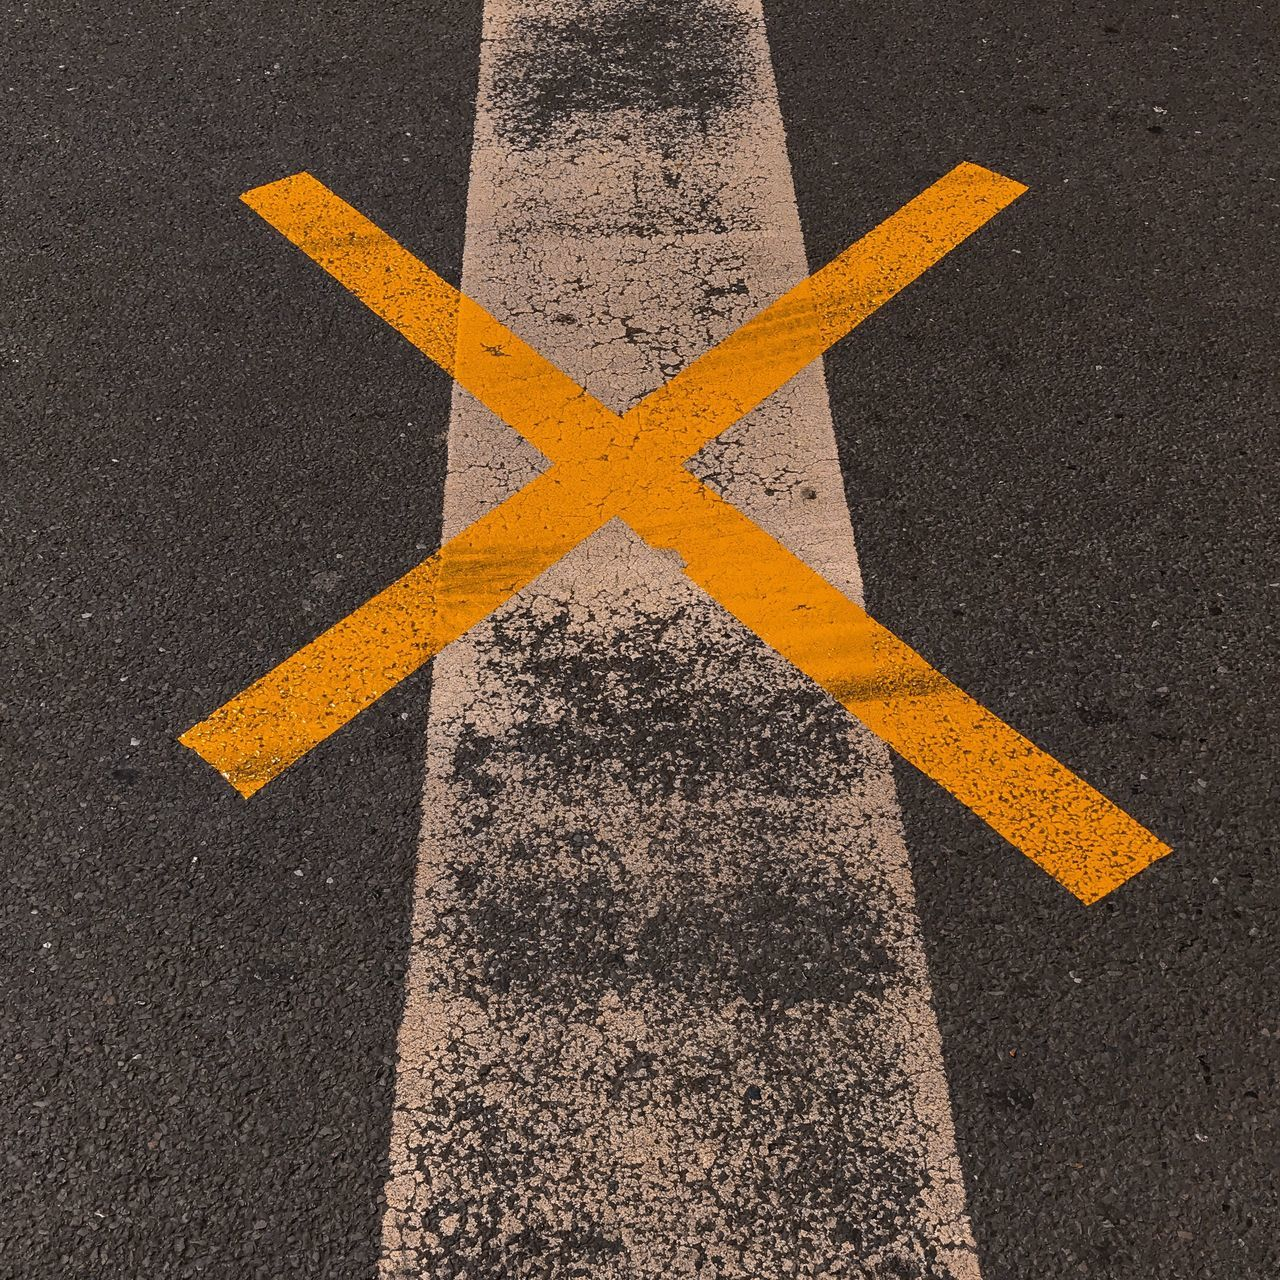 road marking, road, asphalt, yellow, guidance, transportation, high angle view, no people, day, outdoors, close-up, road sign